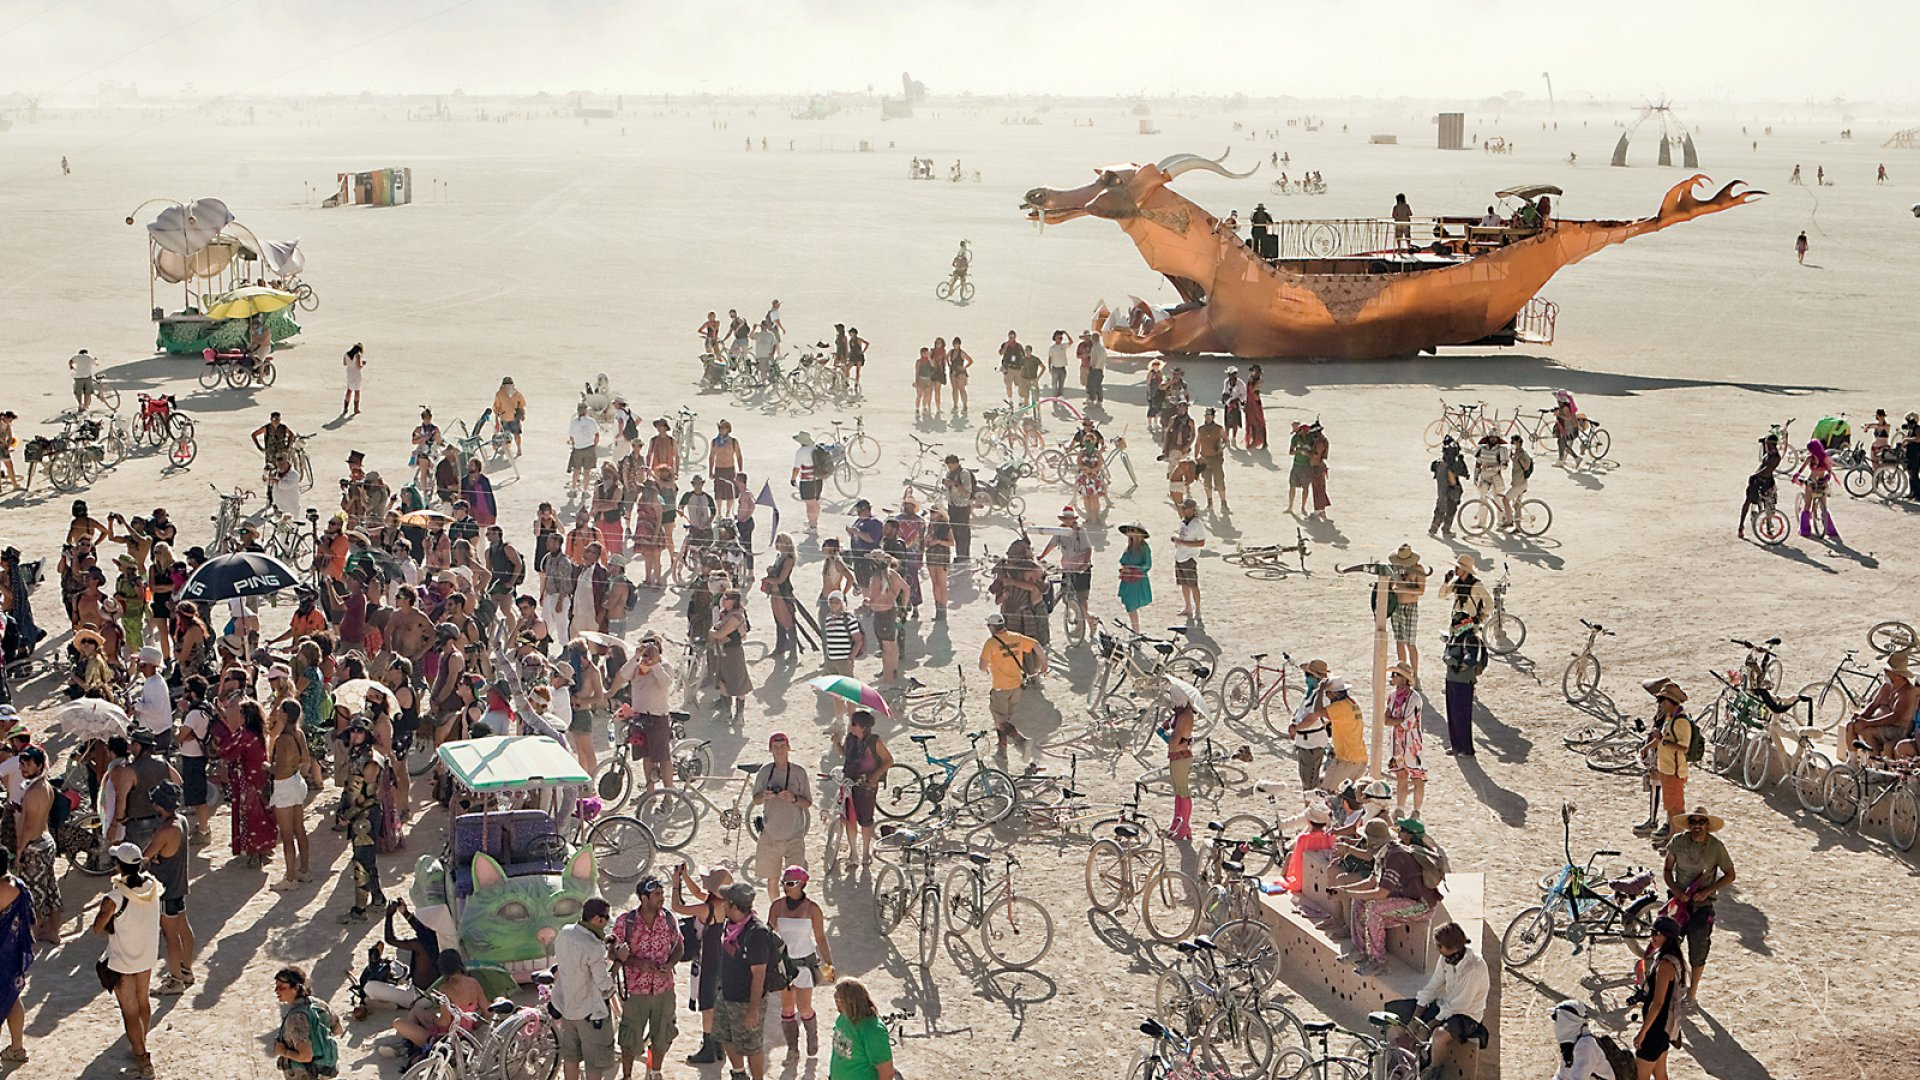 Burning Man takes its name from the immolation of a large wooden effigy on Saturday evening.